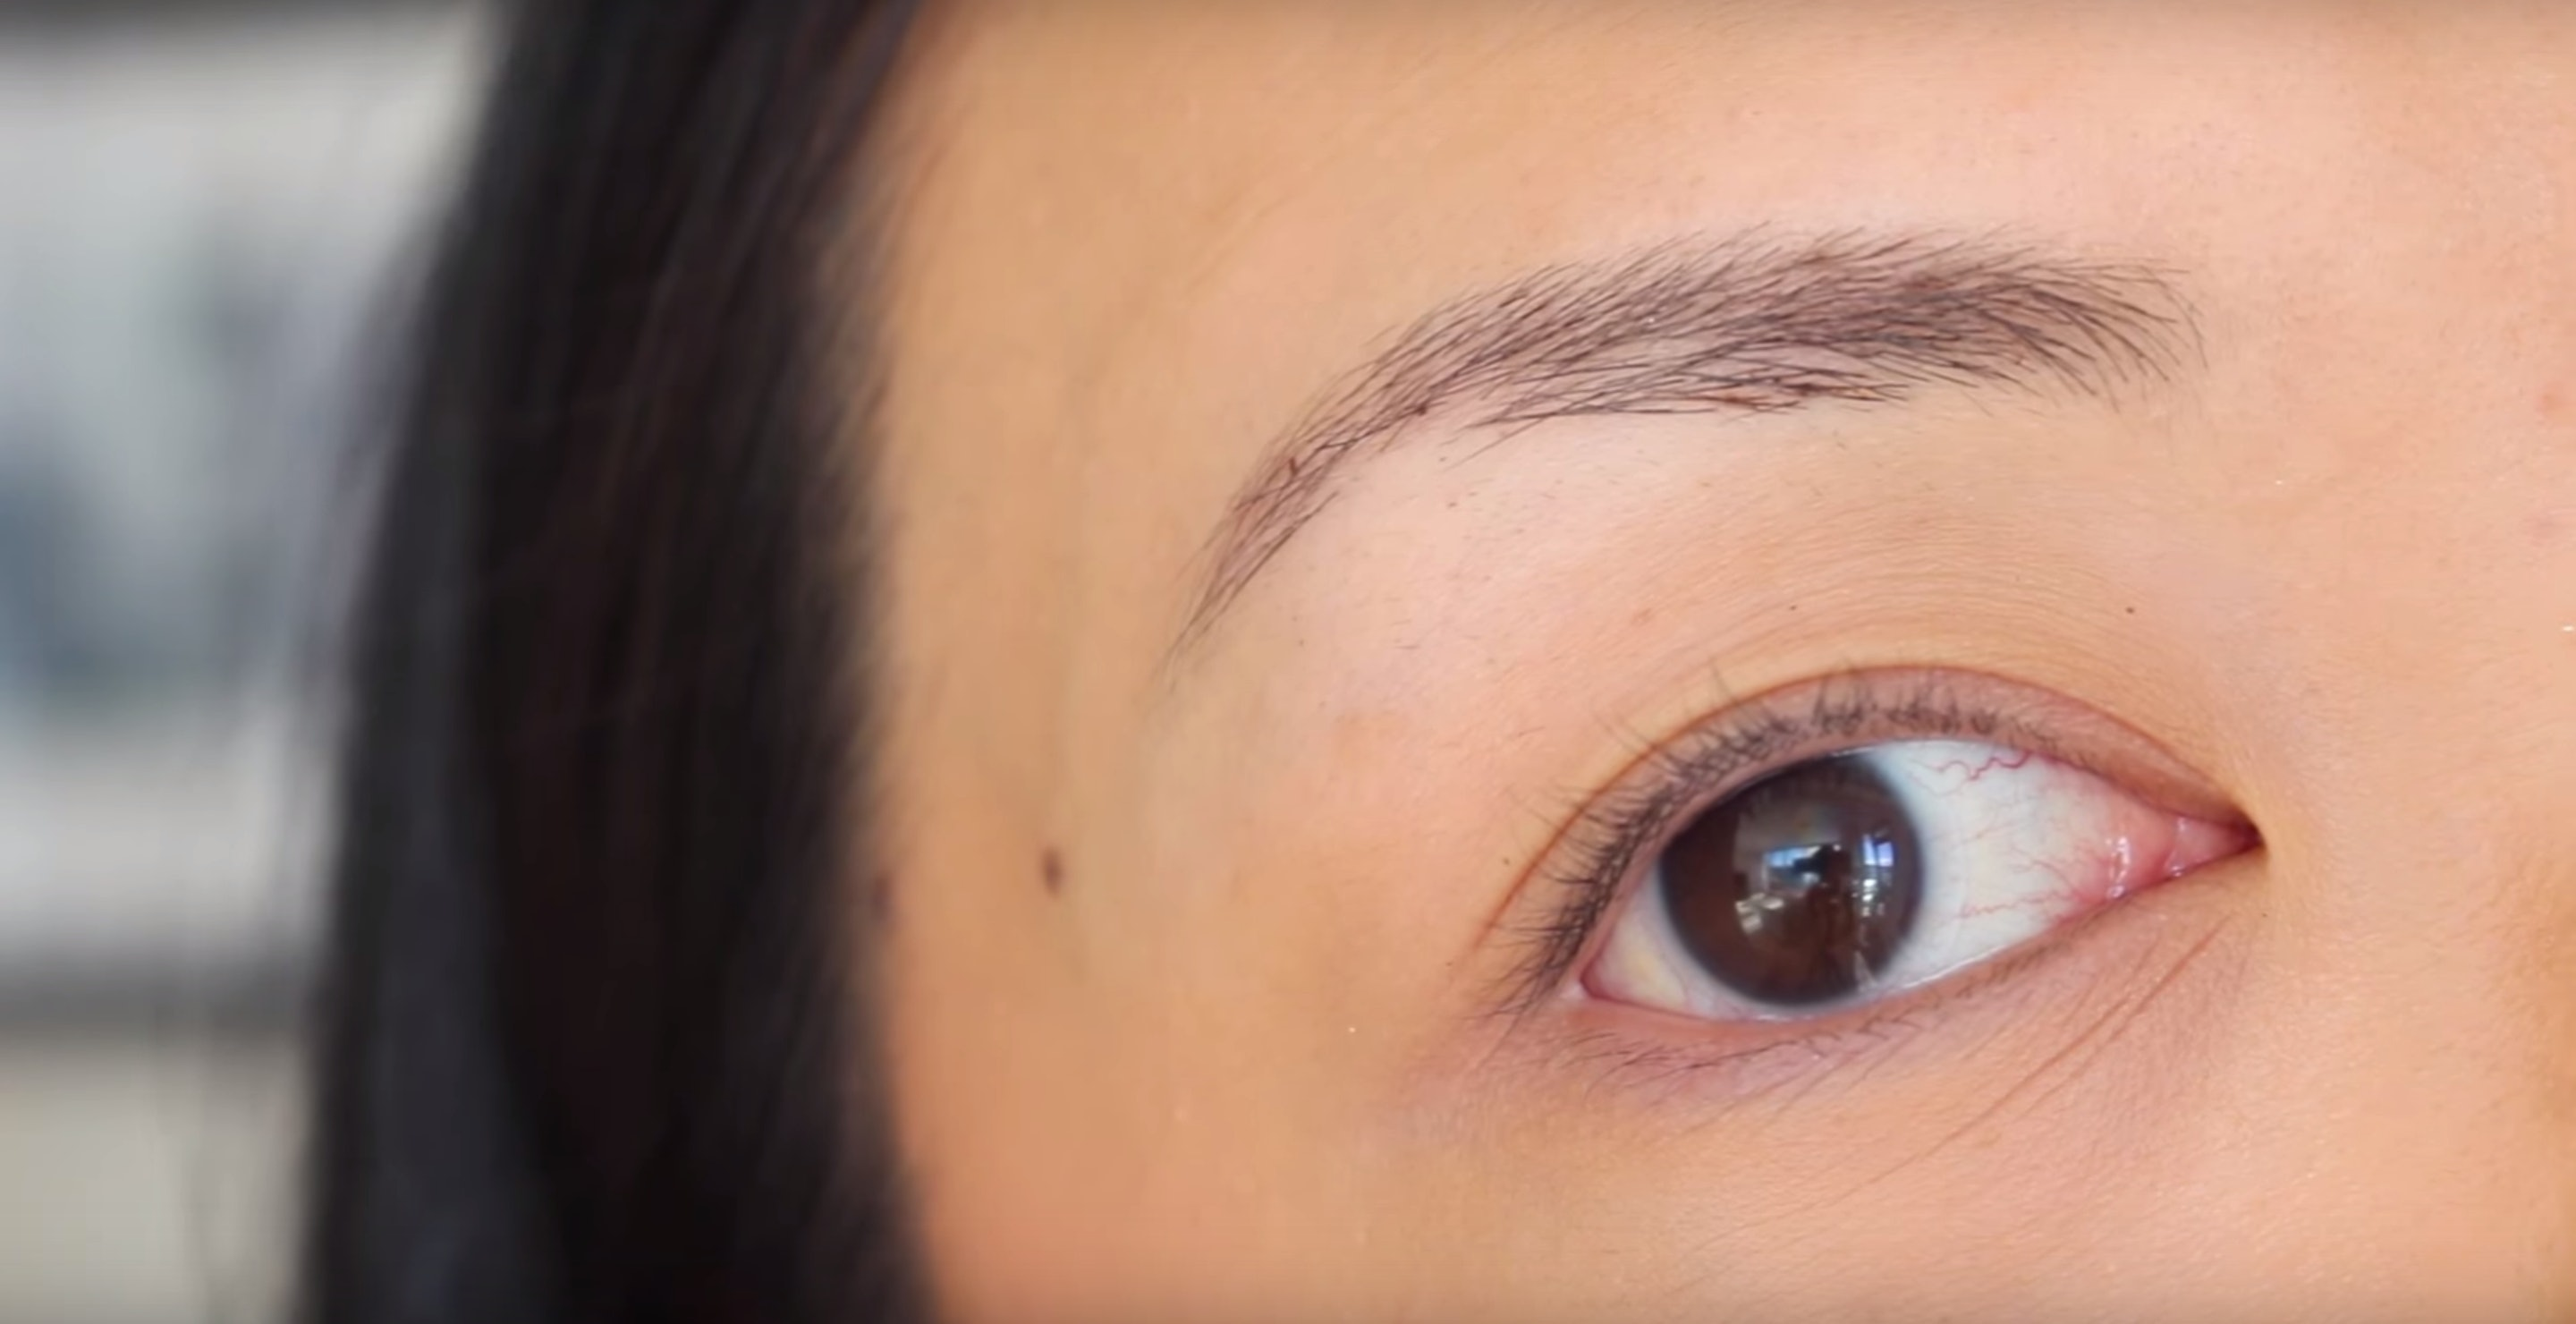 How To Tint Your Eyebrows With Coffee For A Quick Easy Fix